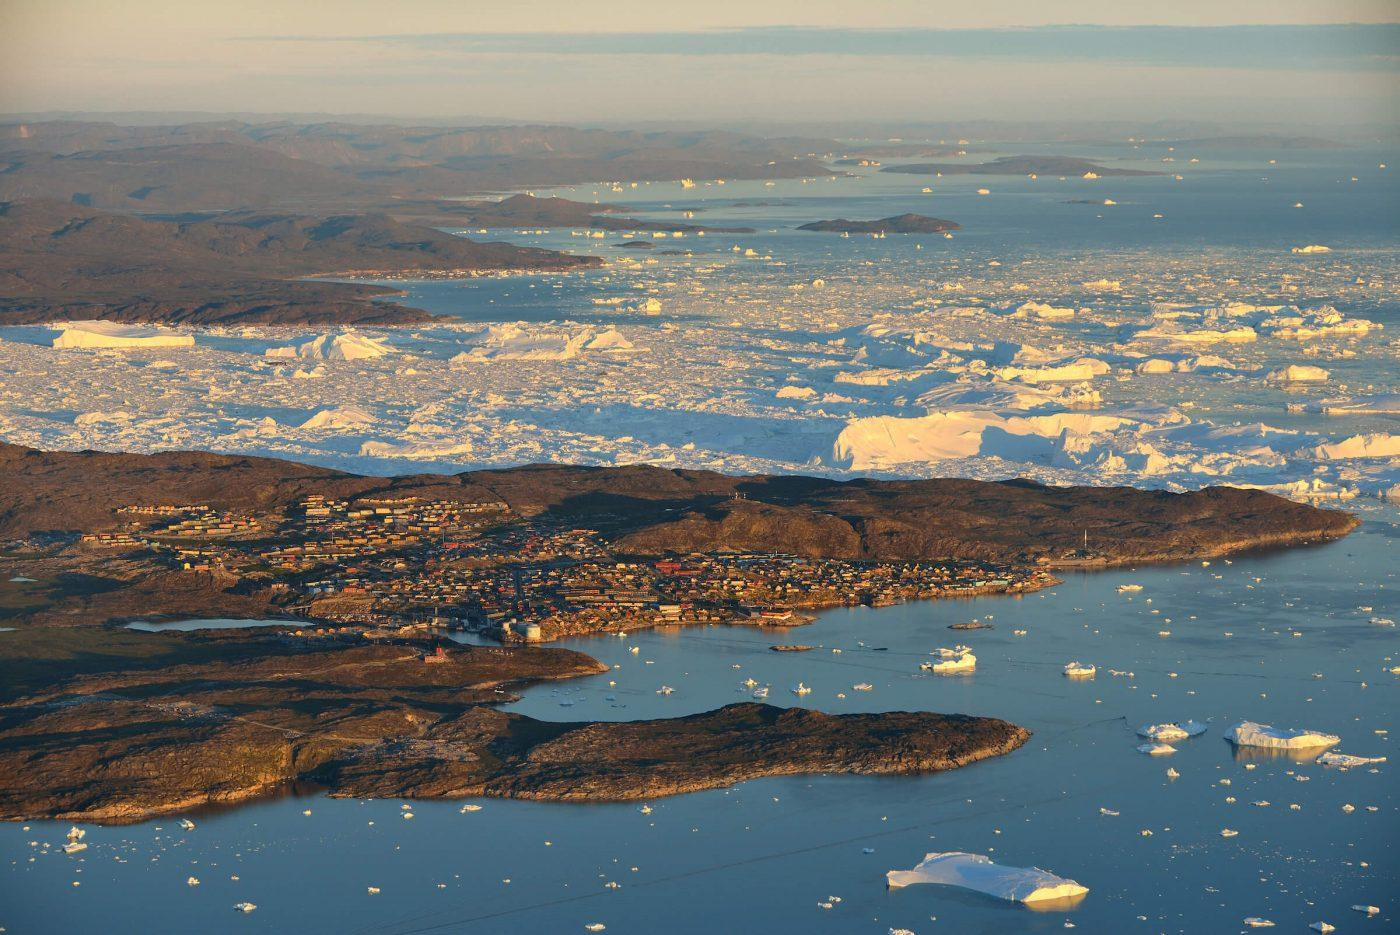 Ilulissat and the Icefjord from the air. By Rino Rasmussen